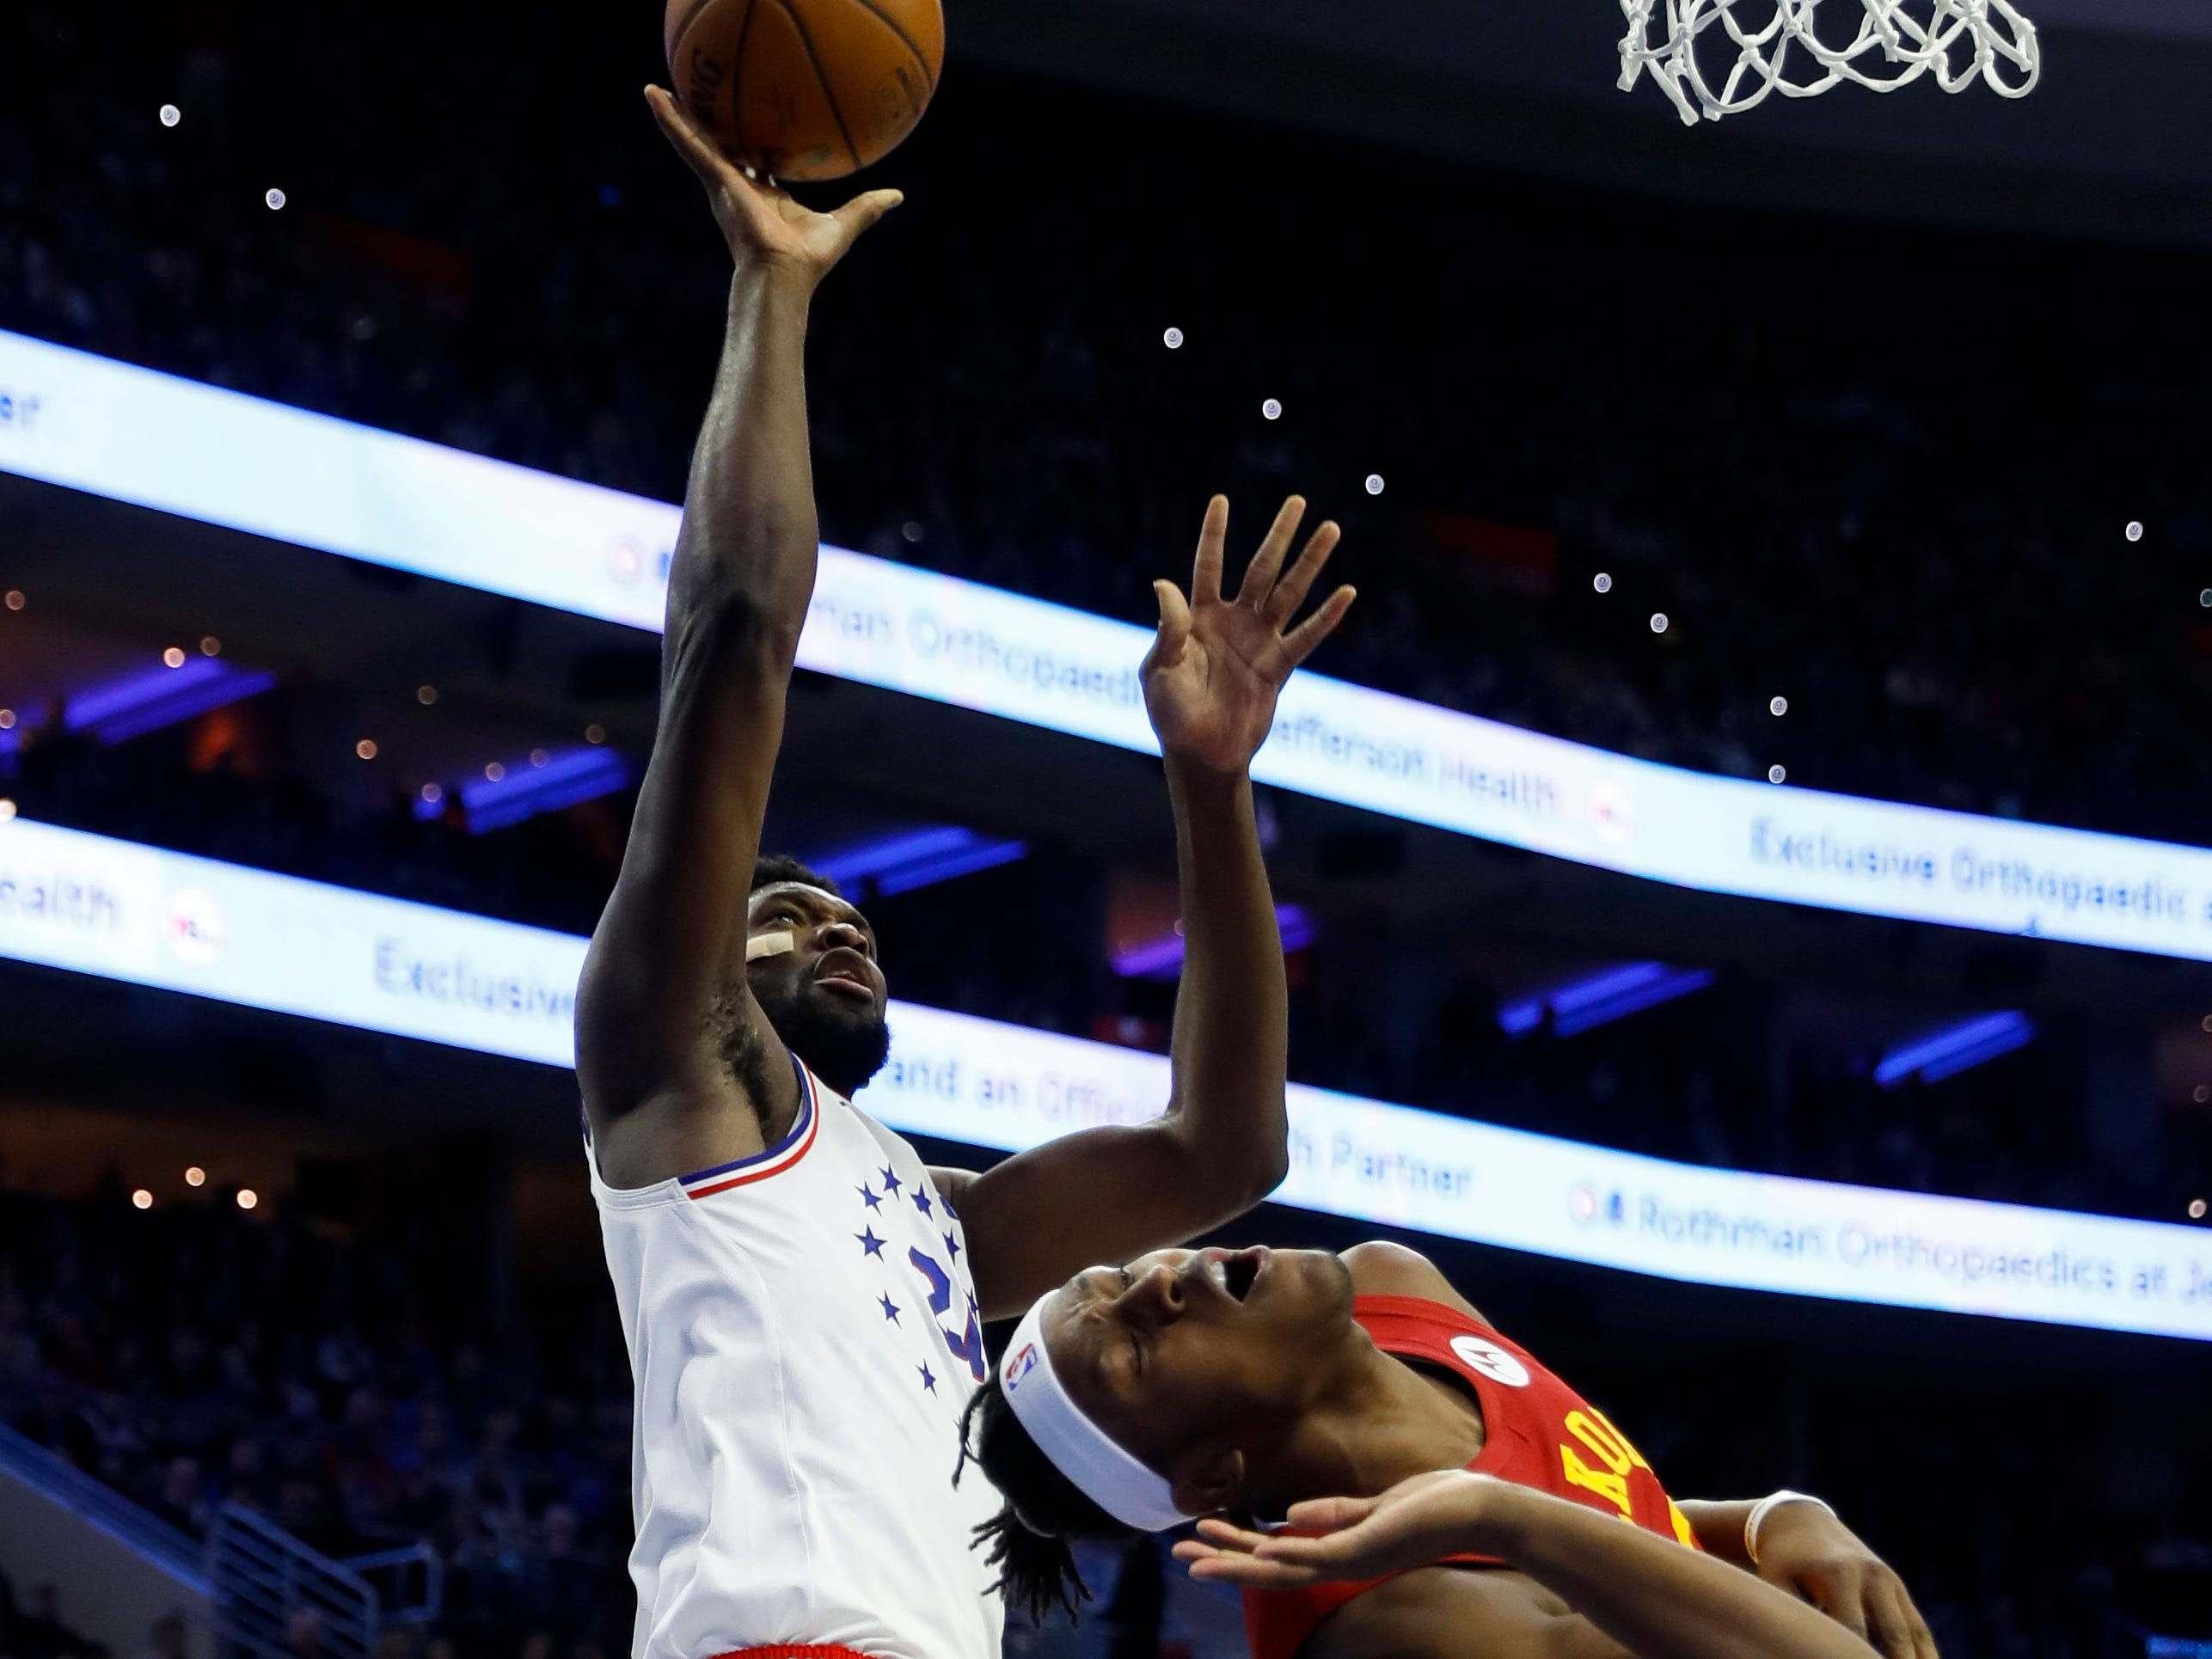 Philadelphia 76ers' Joel Embiid, left, goes up for a shot past Indiana Pacers' Myles Turner during the first half of an NBA basketball game, Sunday, March 10, 2019, in Philadelphia.